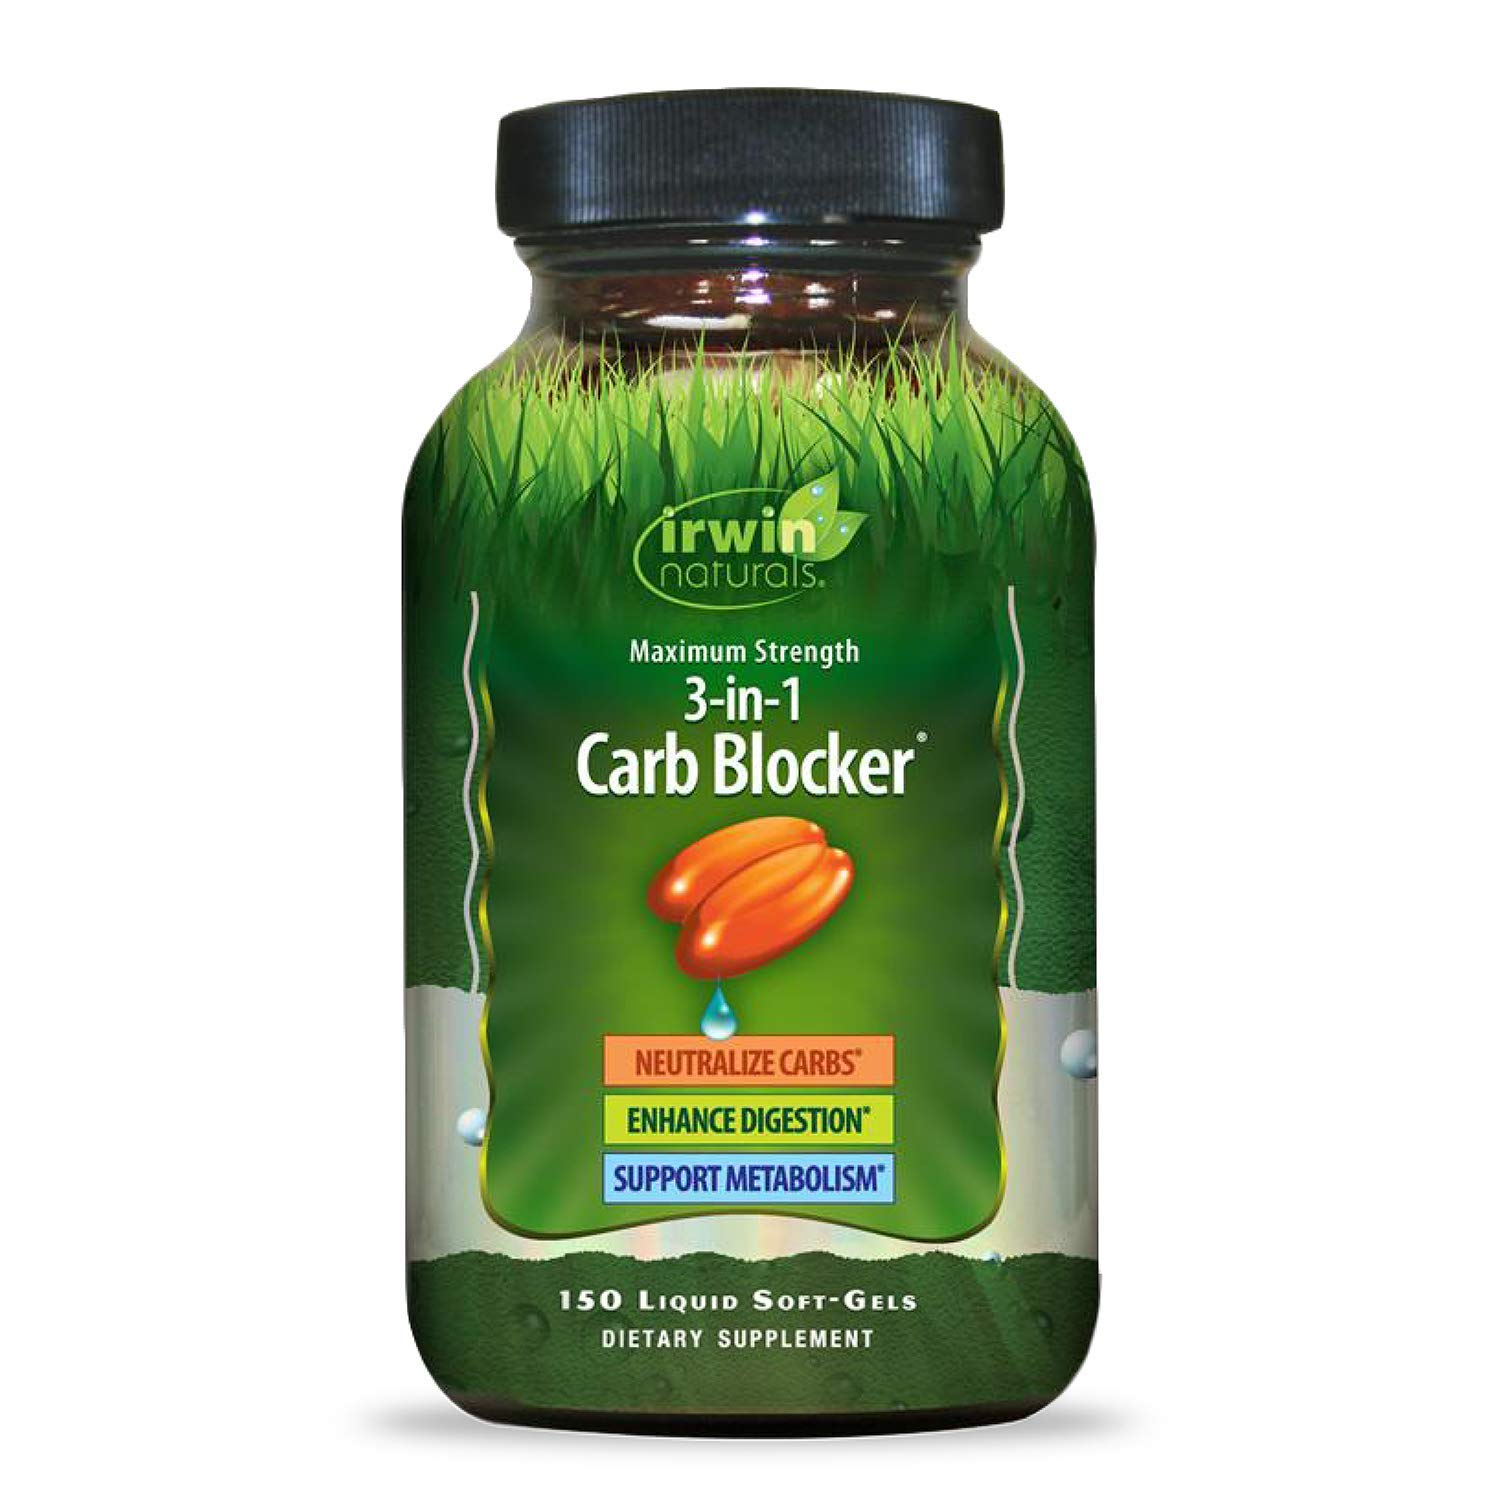 Irwin Naturals Maximum Strength 3-in-1 Carb Blocker - Neutralize Carbohydrates and Support Metabolism - 150 Liquid Softgels by Irwin Naturals